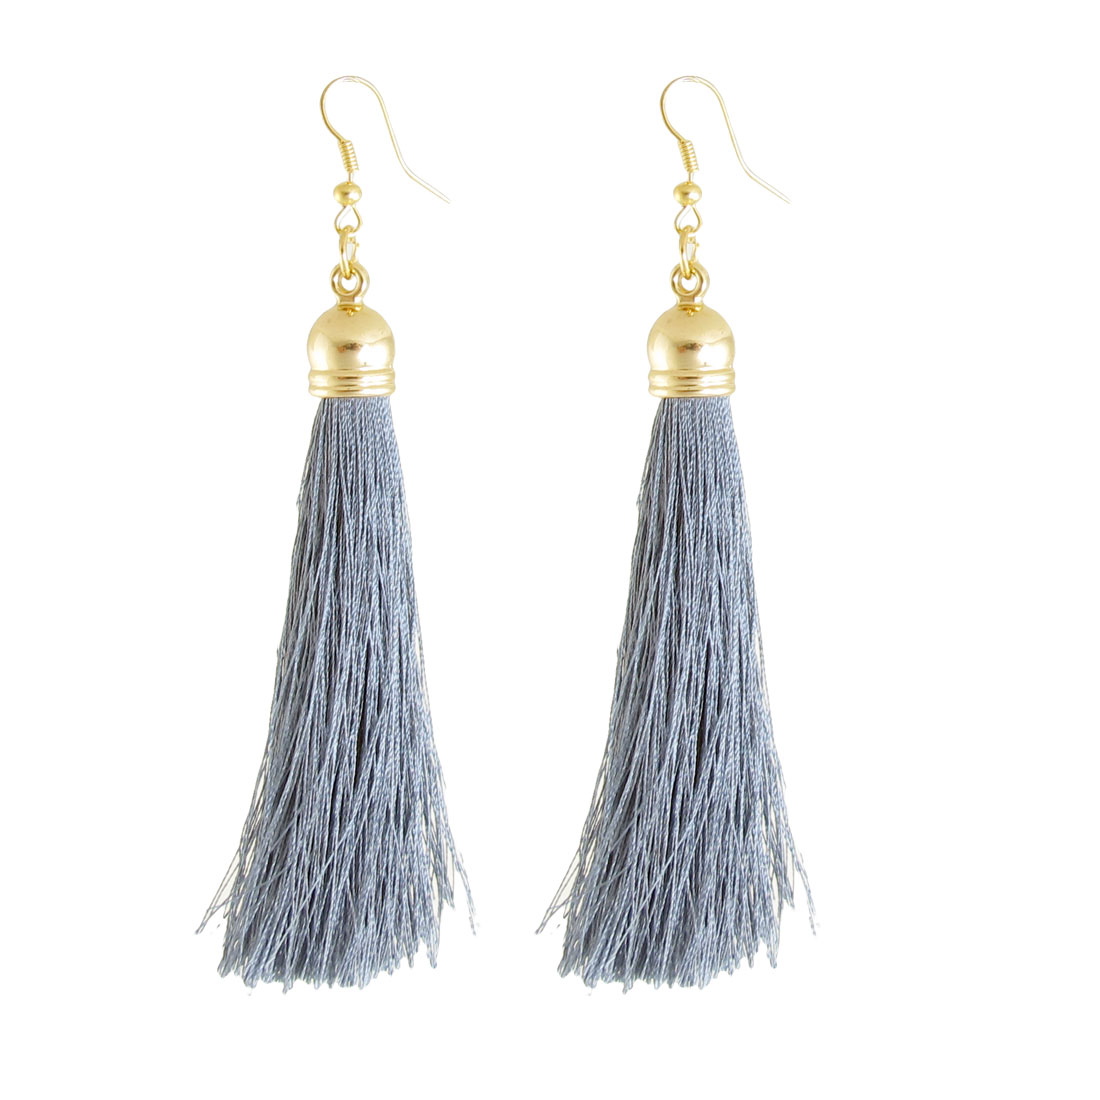 Pair Ladies Girl Dark Gray Nylon Tassel Pendant Dangling Eardrop Earrings